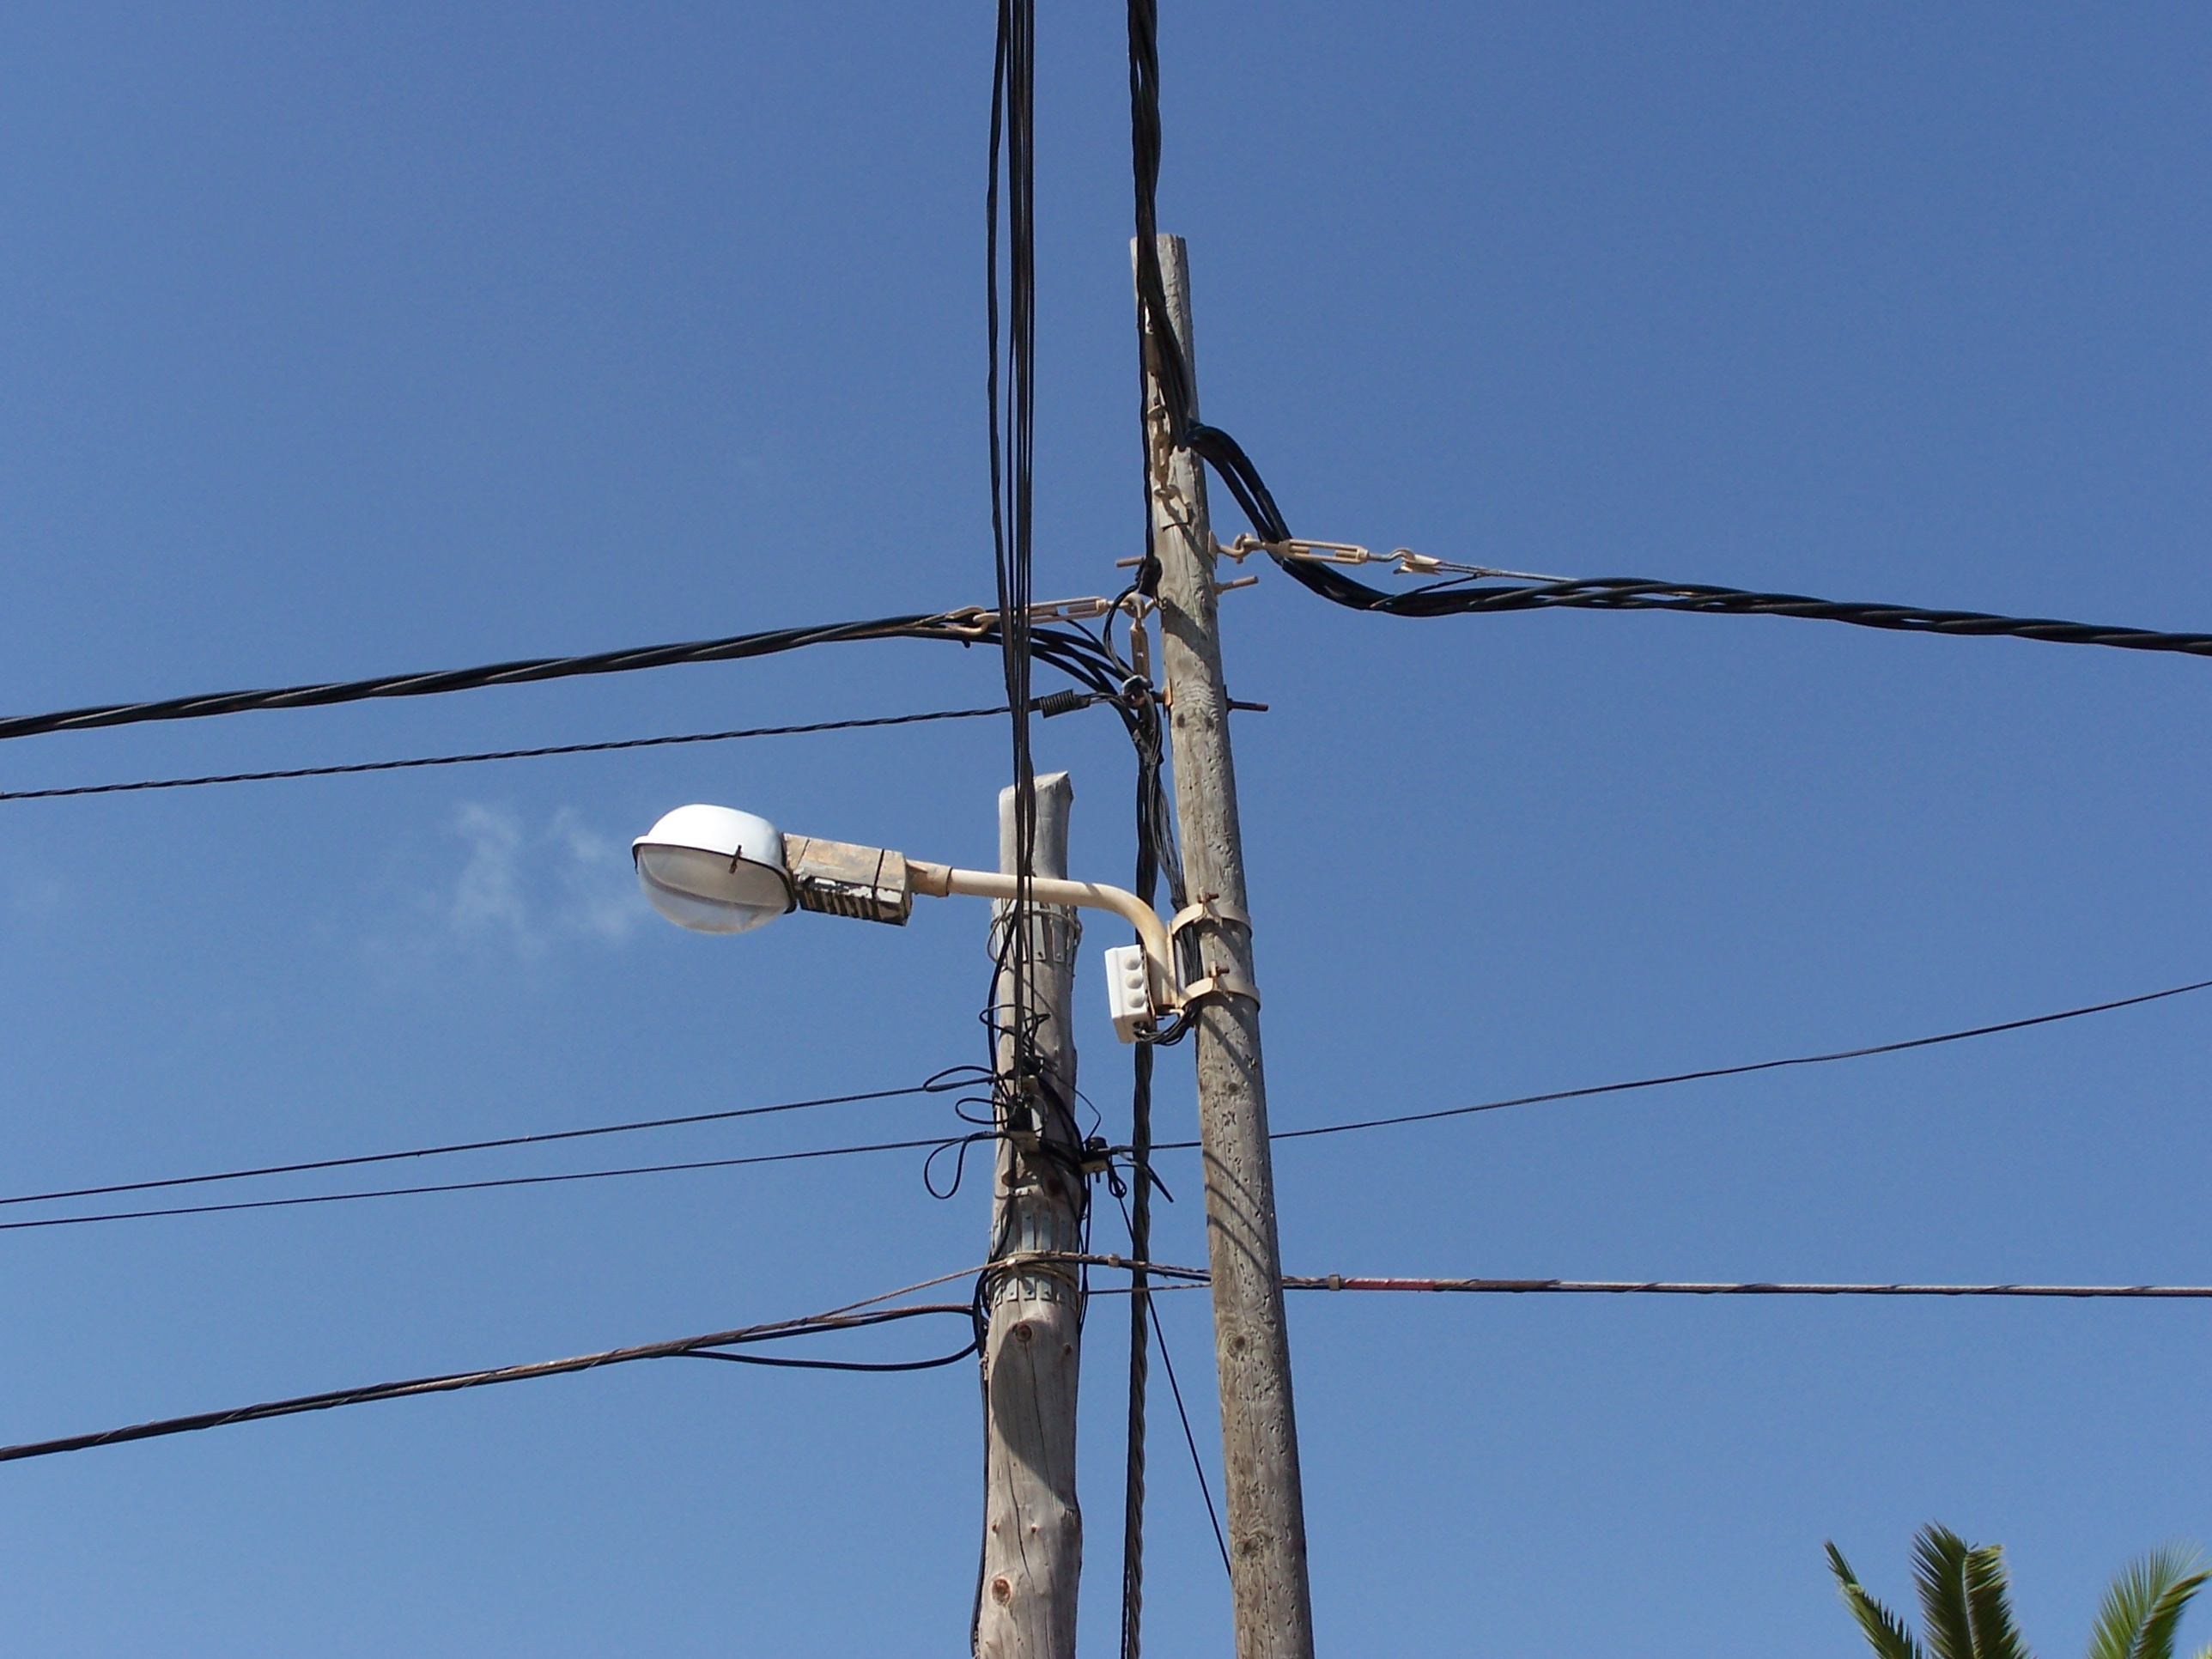 Free photo: Electric installation chaos - power, wires, mallorca ...